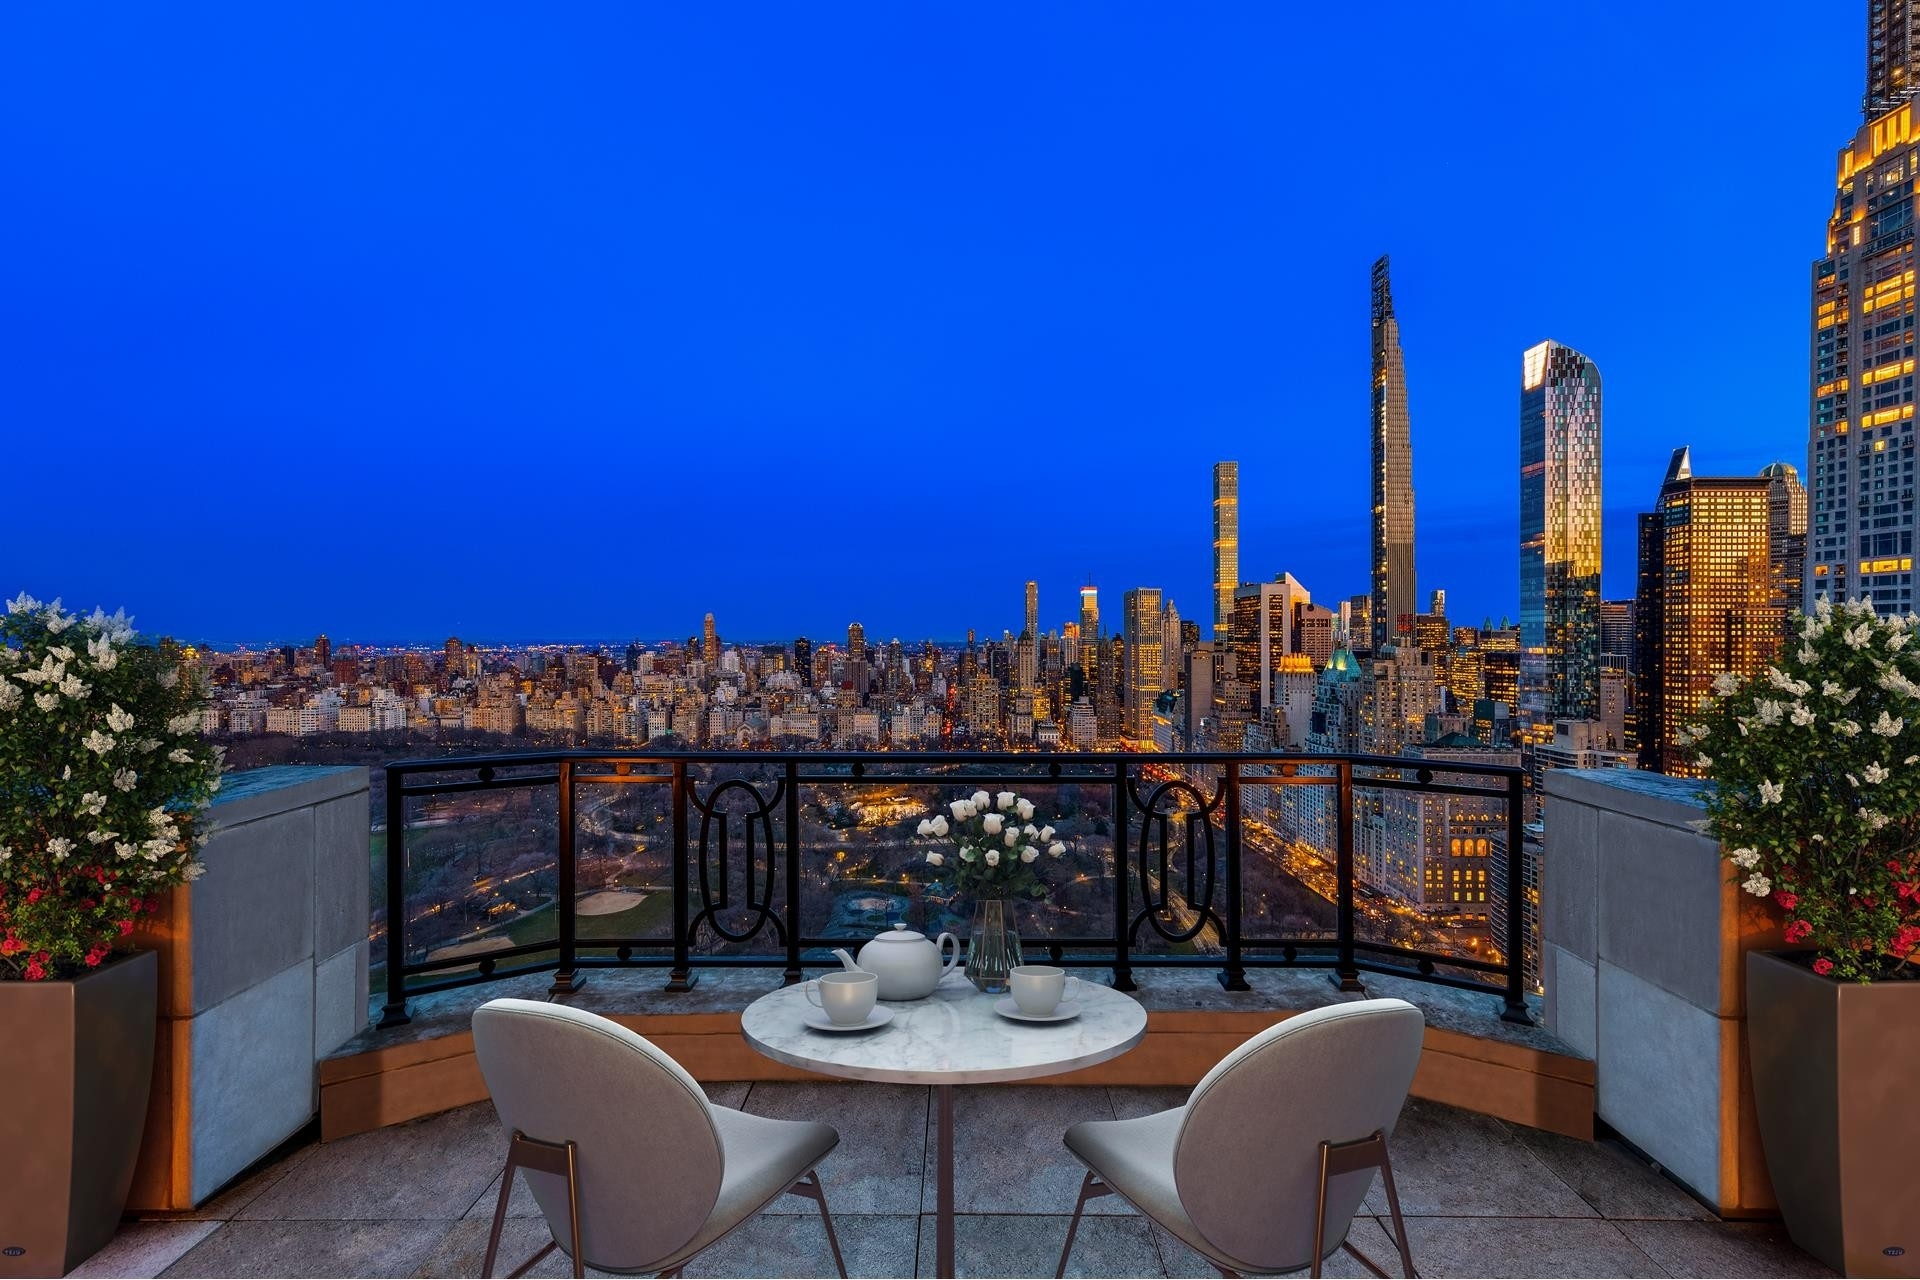 Condominium for Sale at 15 Cpw, 15 CENTRAL PARK W, PH41 Lincoln Square, New York, NY 10023